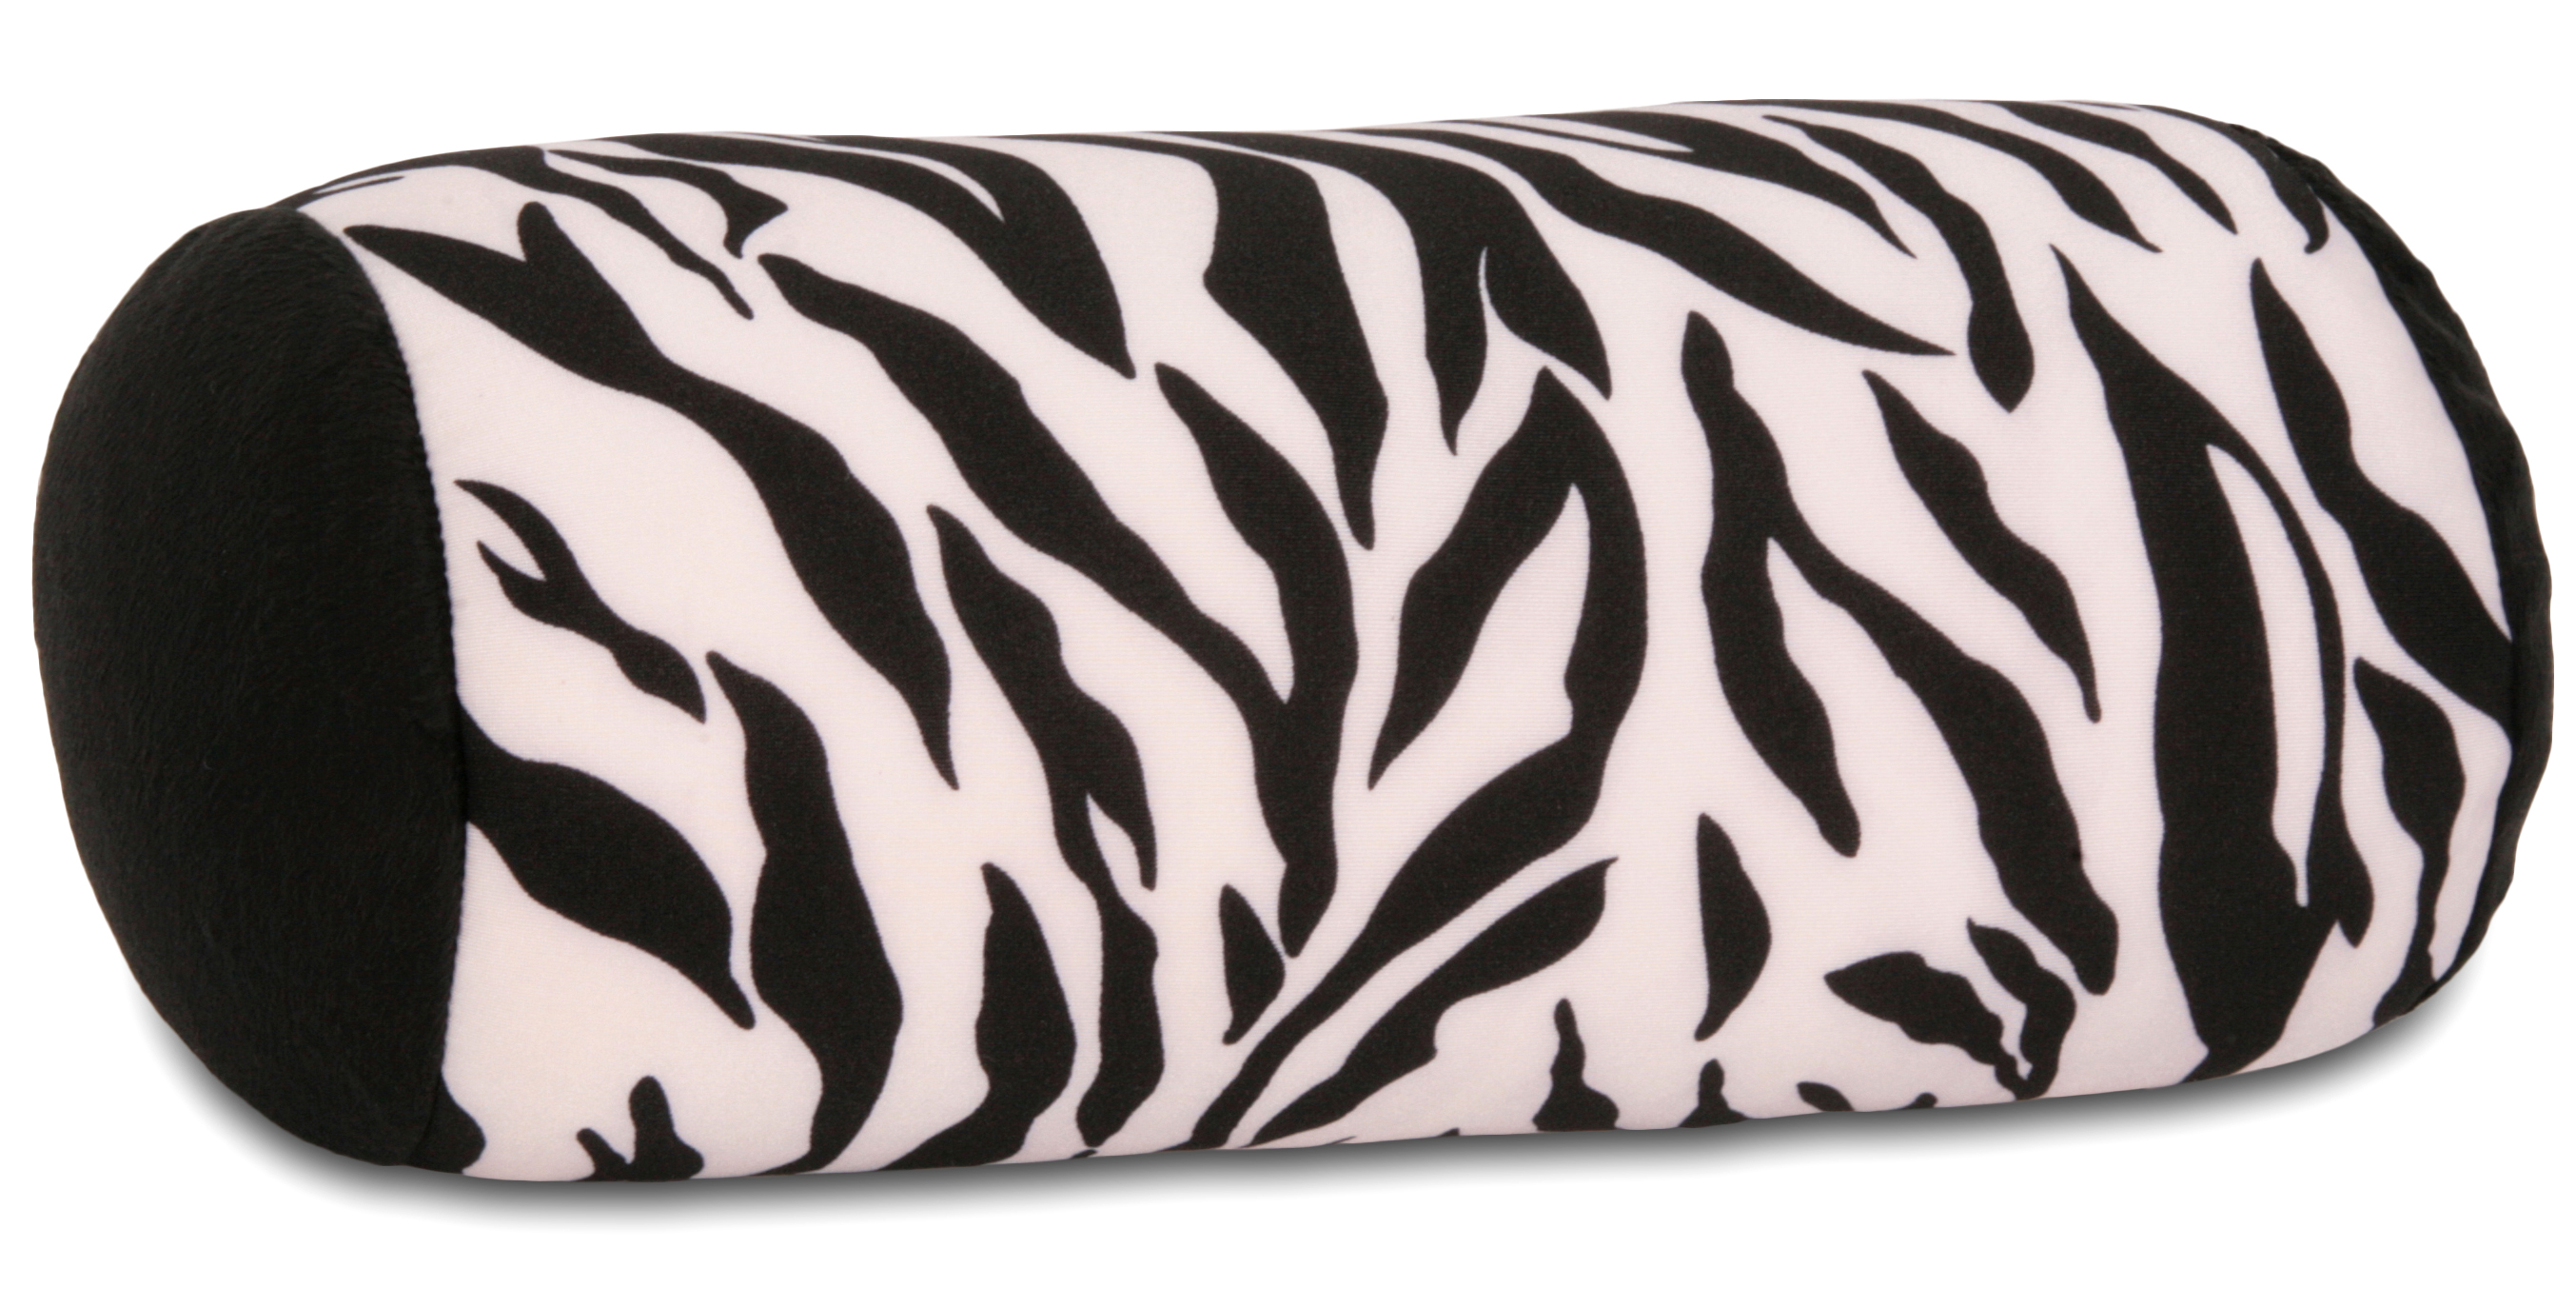 Deluxe 2 & 1 Travel Squish Microbead Pillow Wild by Living Healthy Products